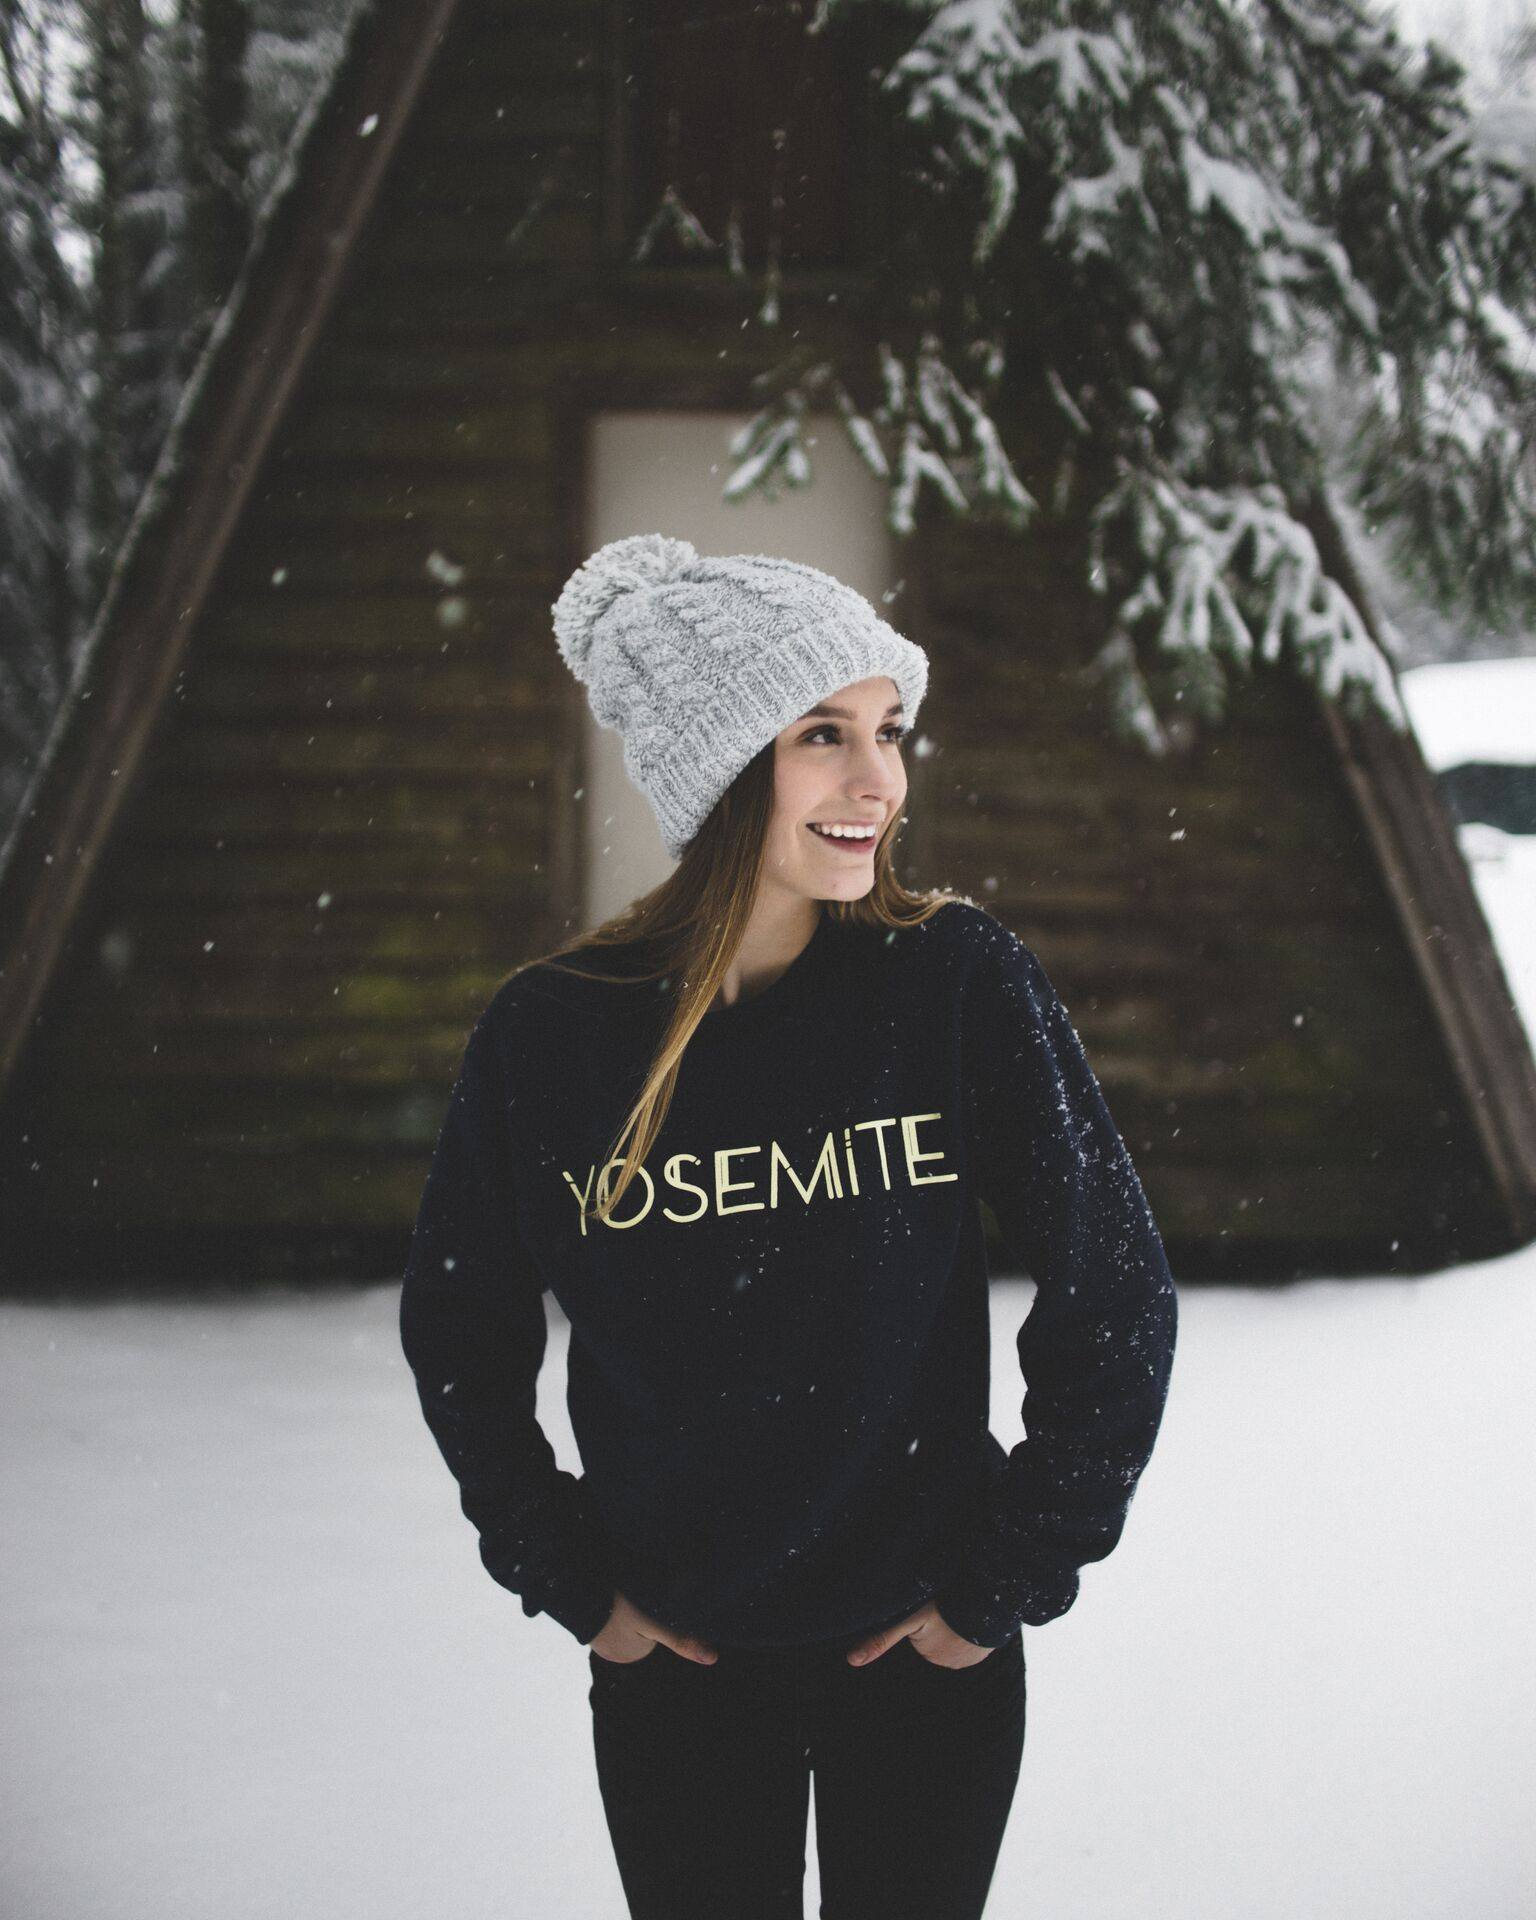 The Parks Yosemite Crewneck Sweater - The Parks Apparel